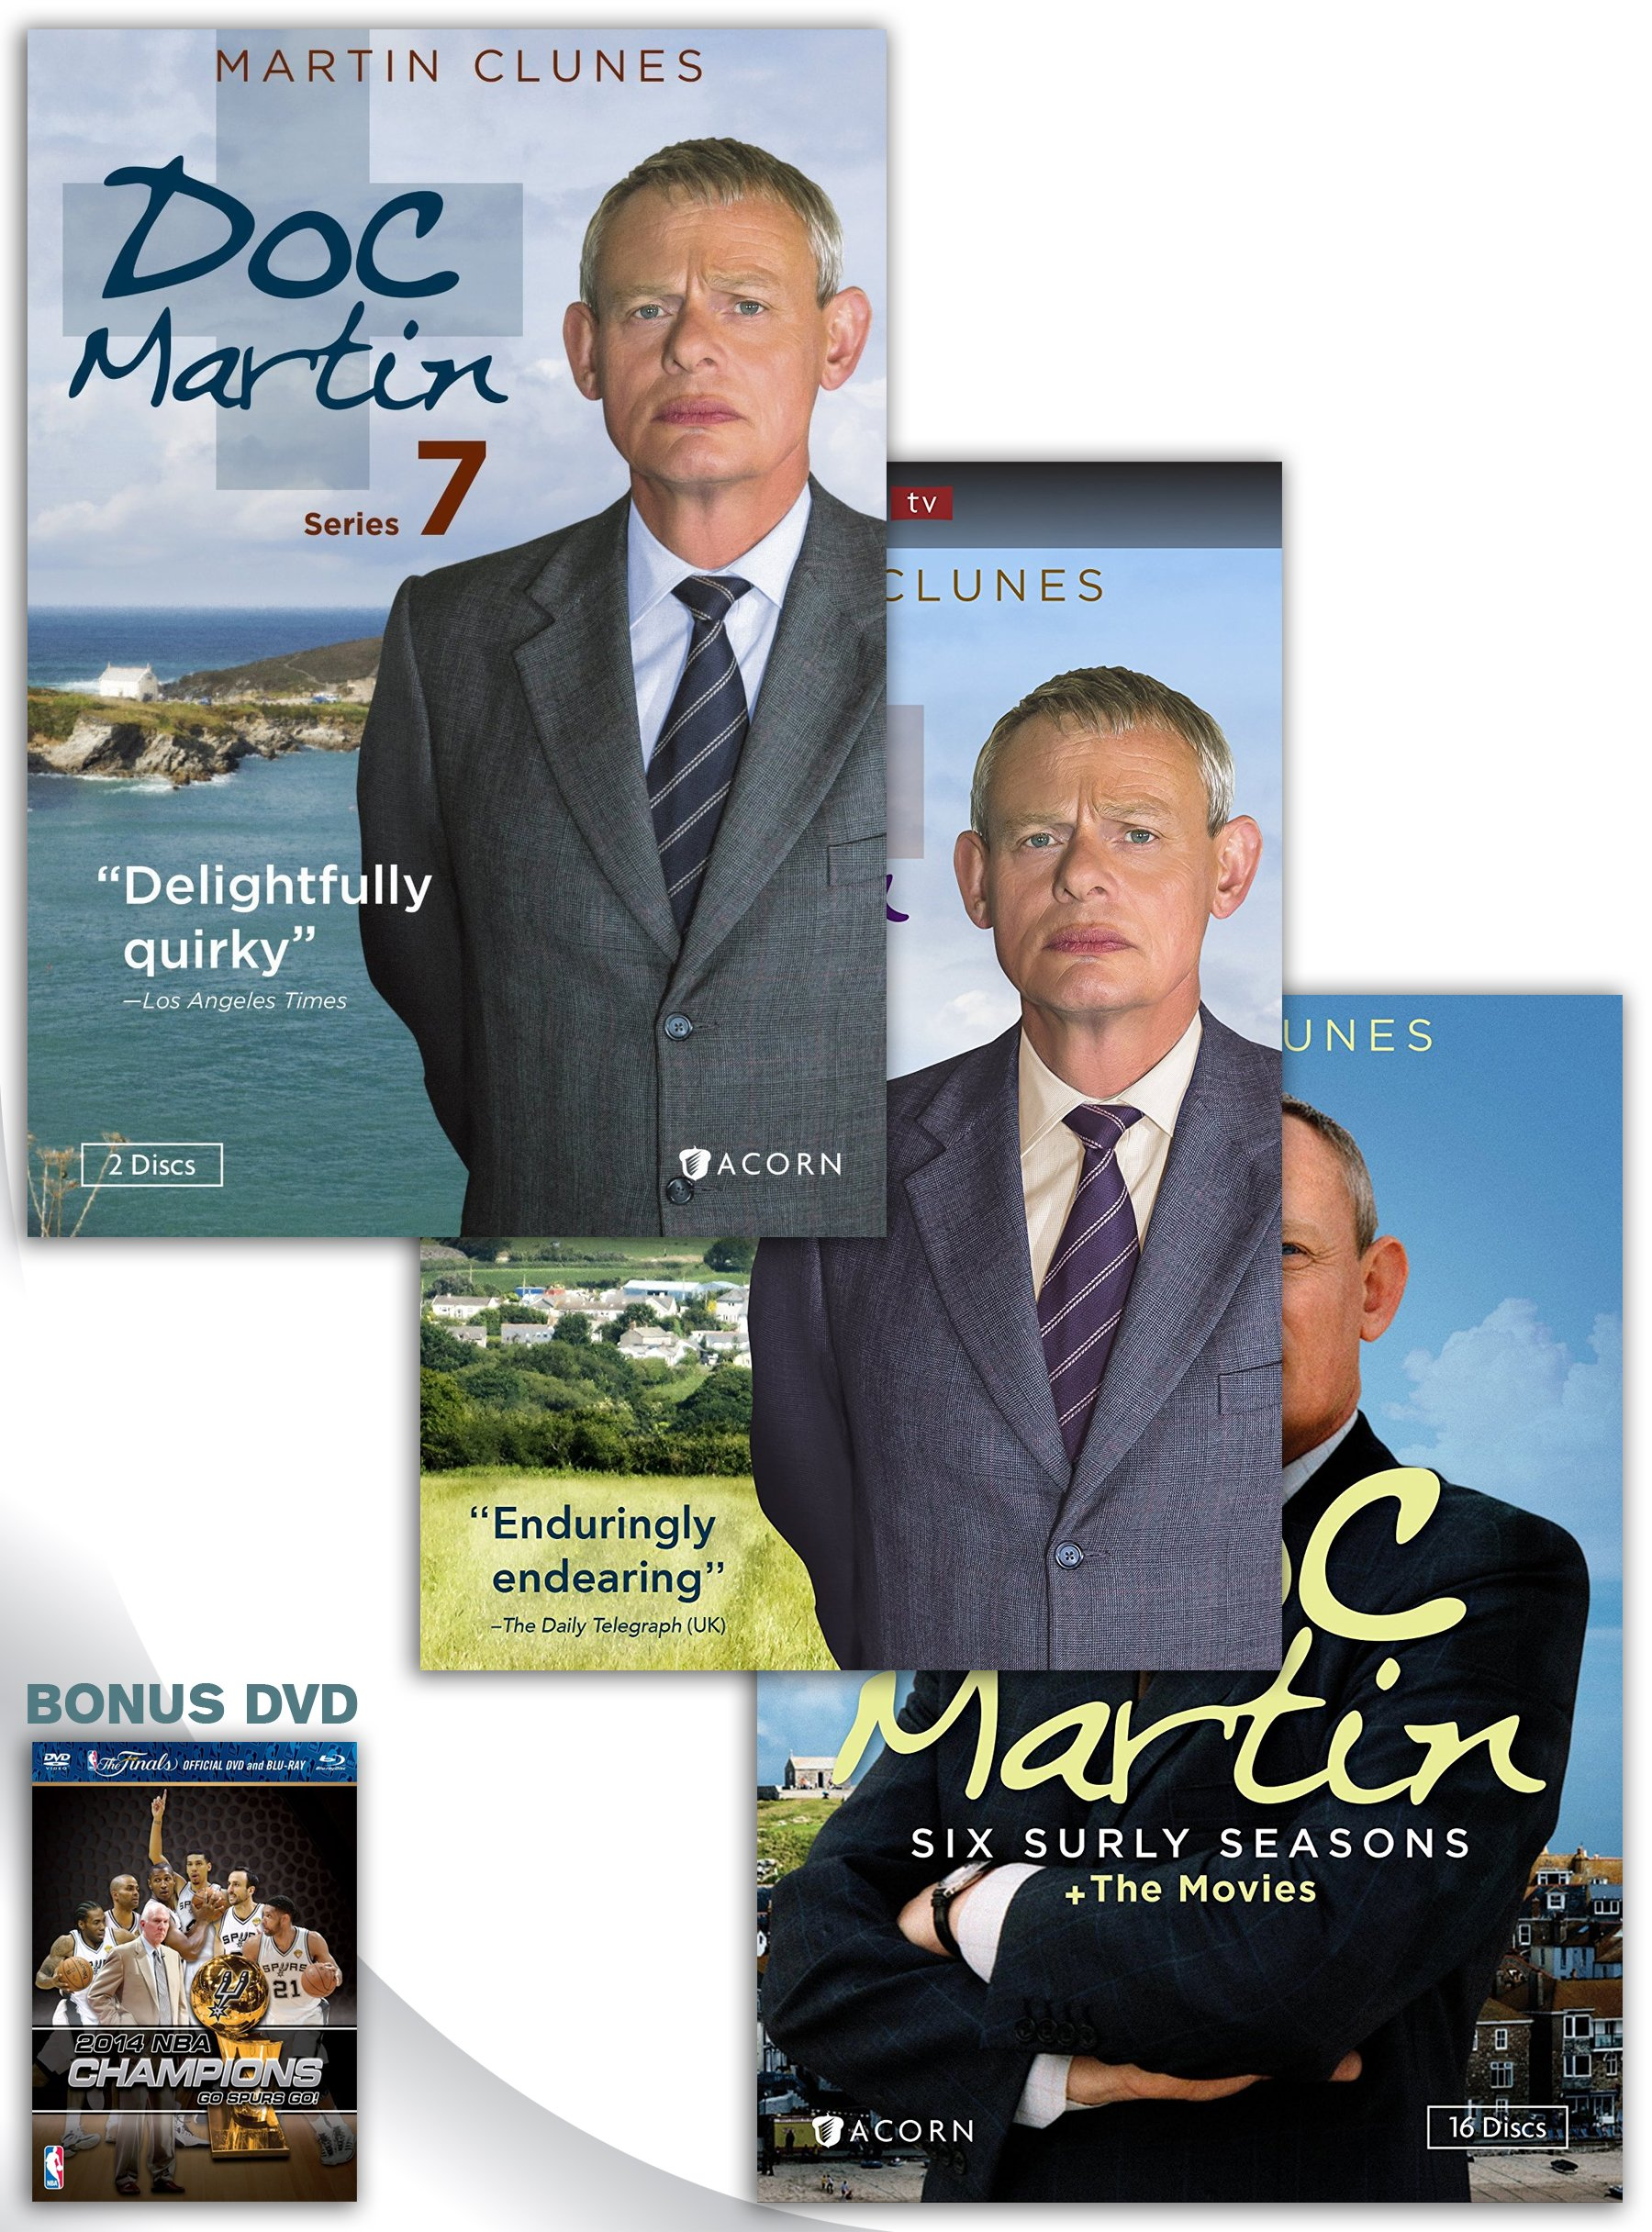 Doc Martin, Series 7 DVD + Doc Martin: Series 8 DVD + Doc Martin: Six Surly Seasons + The Movies DVD Box Set with Bonus DVD by ACORN-MEDIA